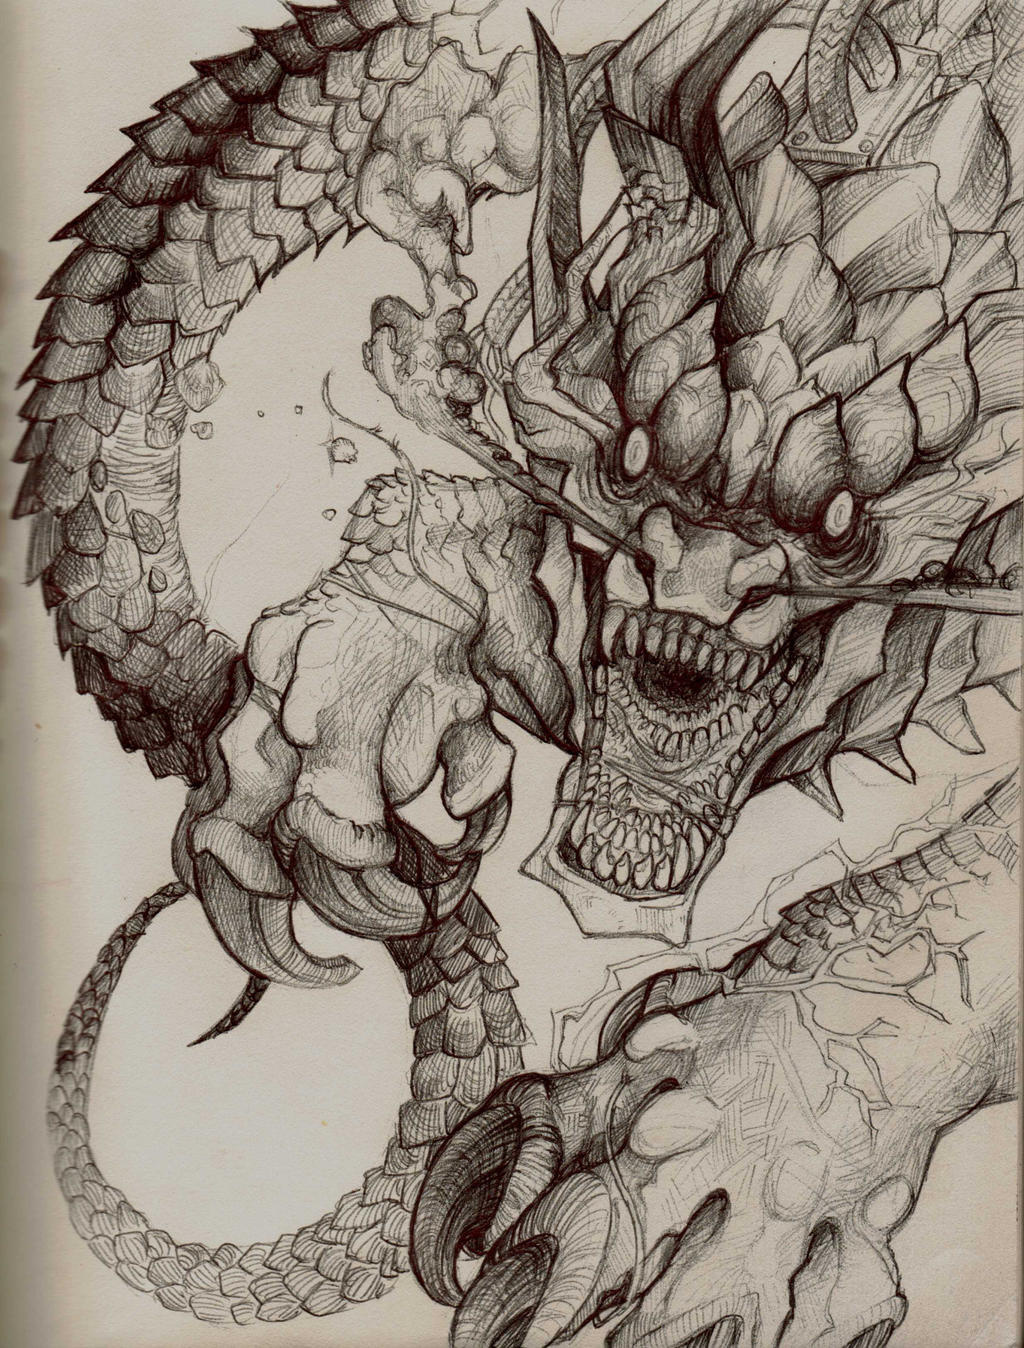 Dragon Sketch By Tokyozilla Traditional Art Drawings Fantasy 2014 2015